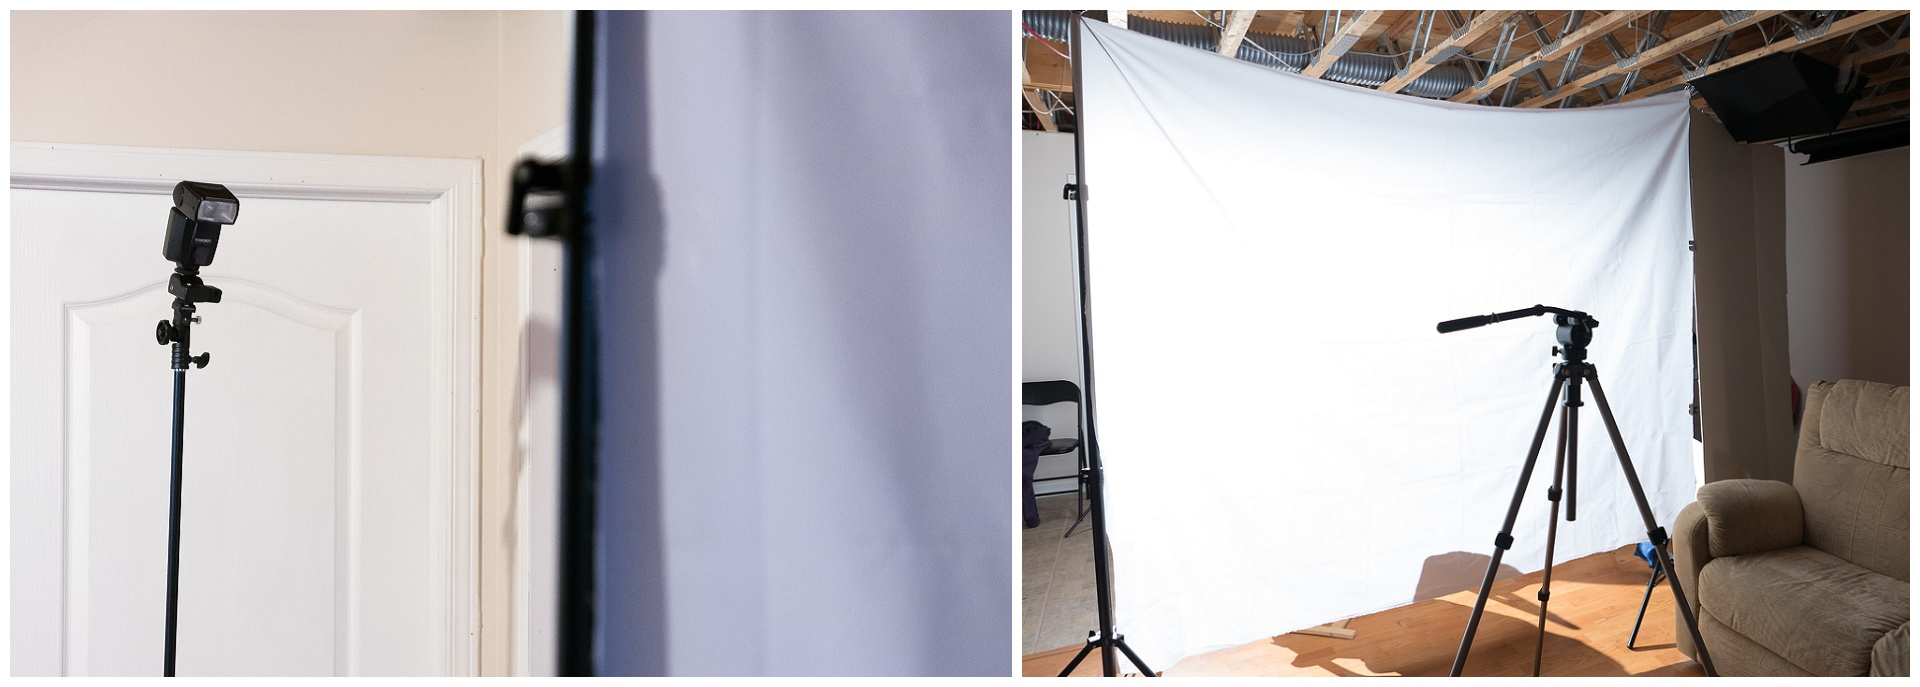 The setup: a flash ~6 feet away from a big6'x9' nylon white fabric held by two clips on 2 flash stands